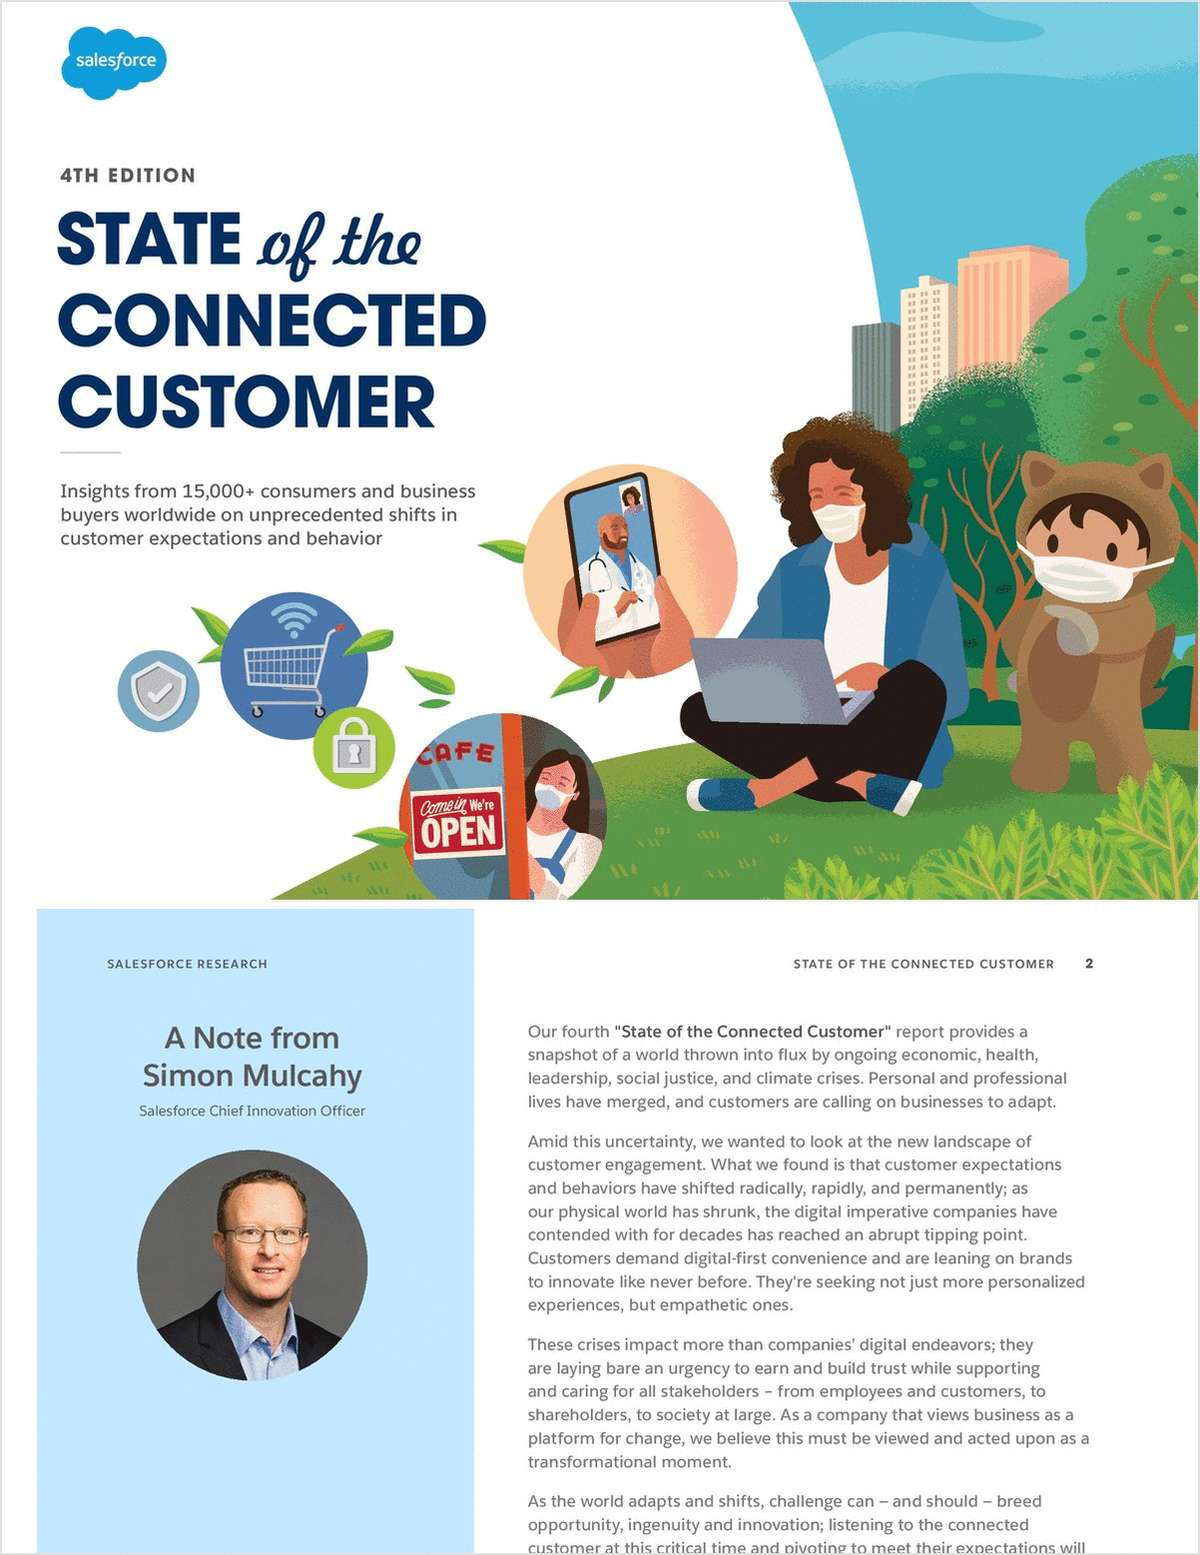 State of the Connected Customer: Fourth Edition